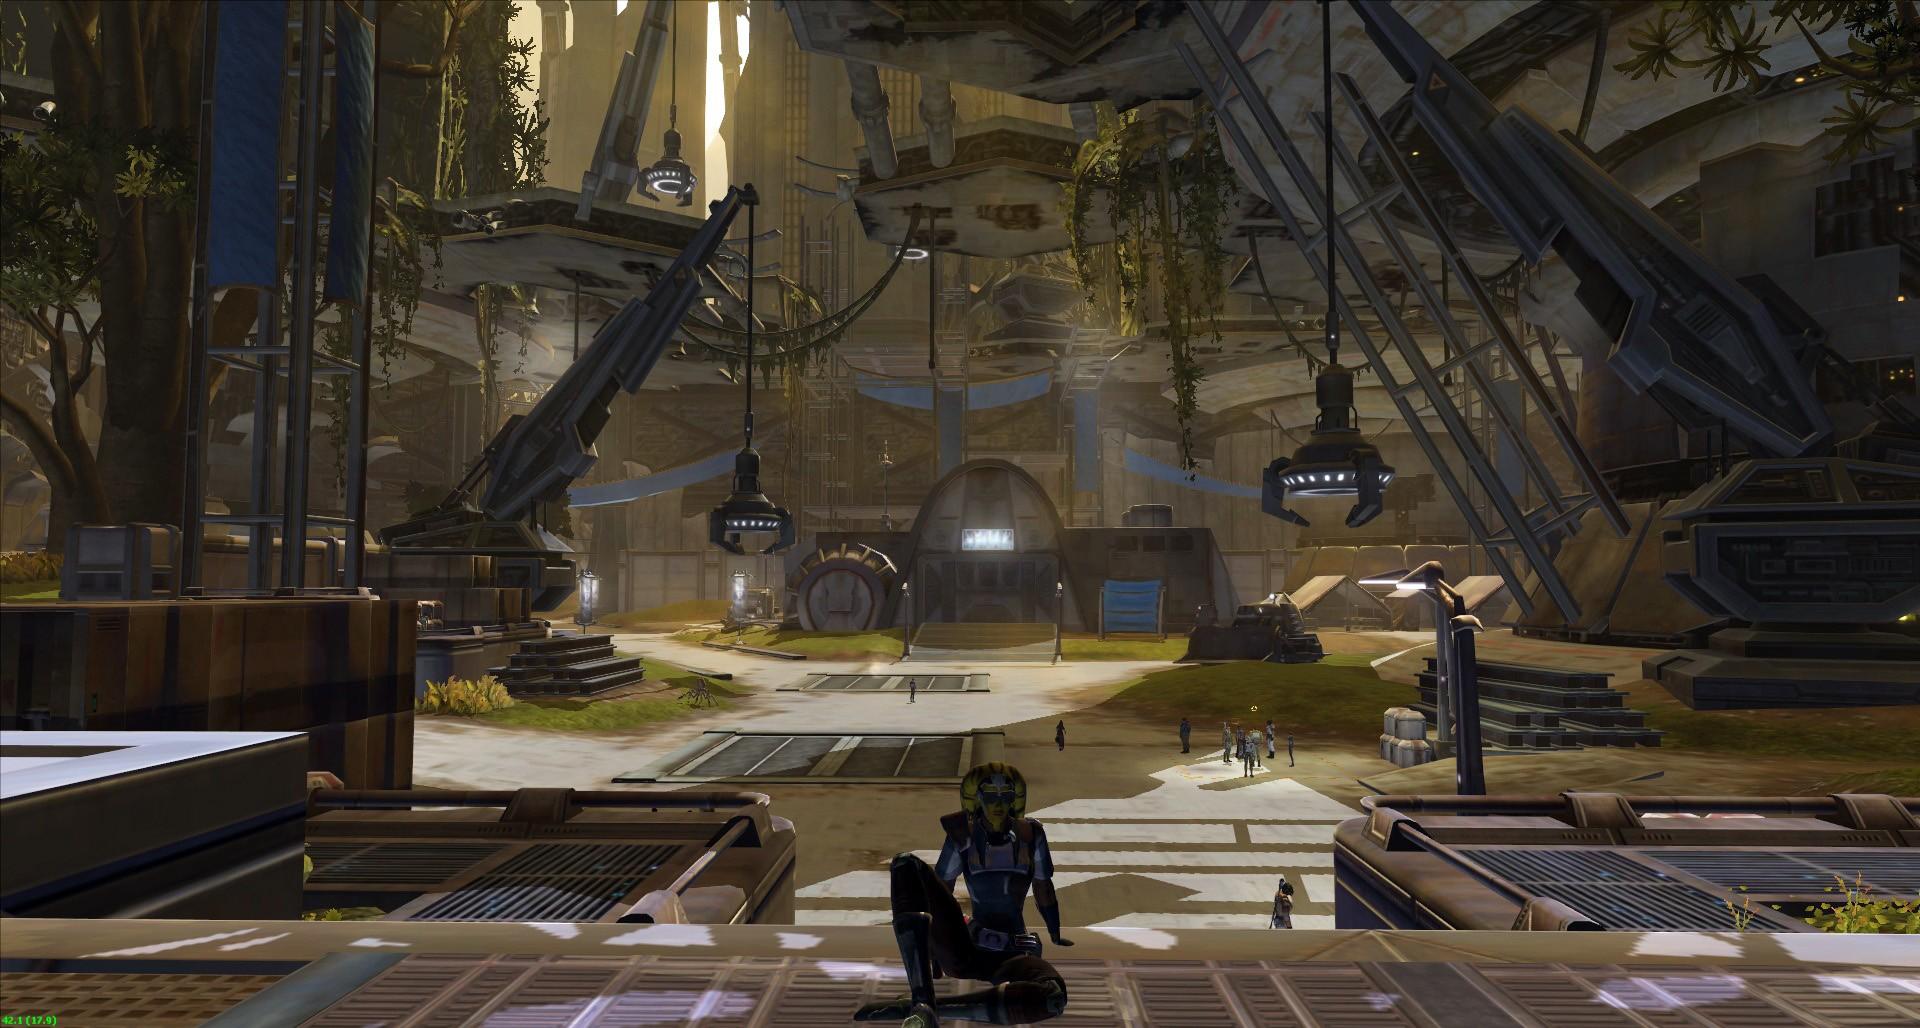 Star Wars: The Old Republic - Making Taris your home